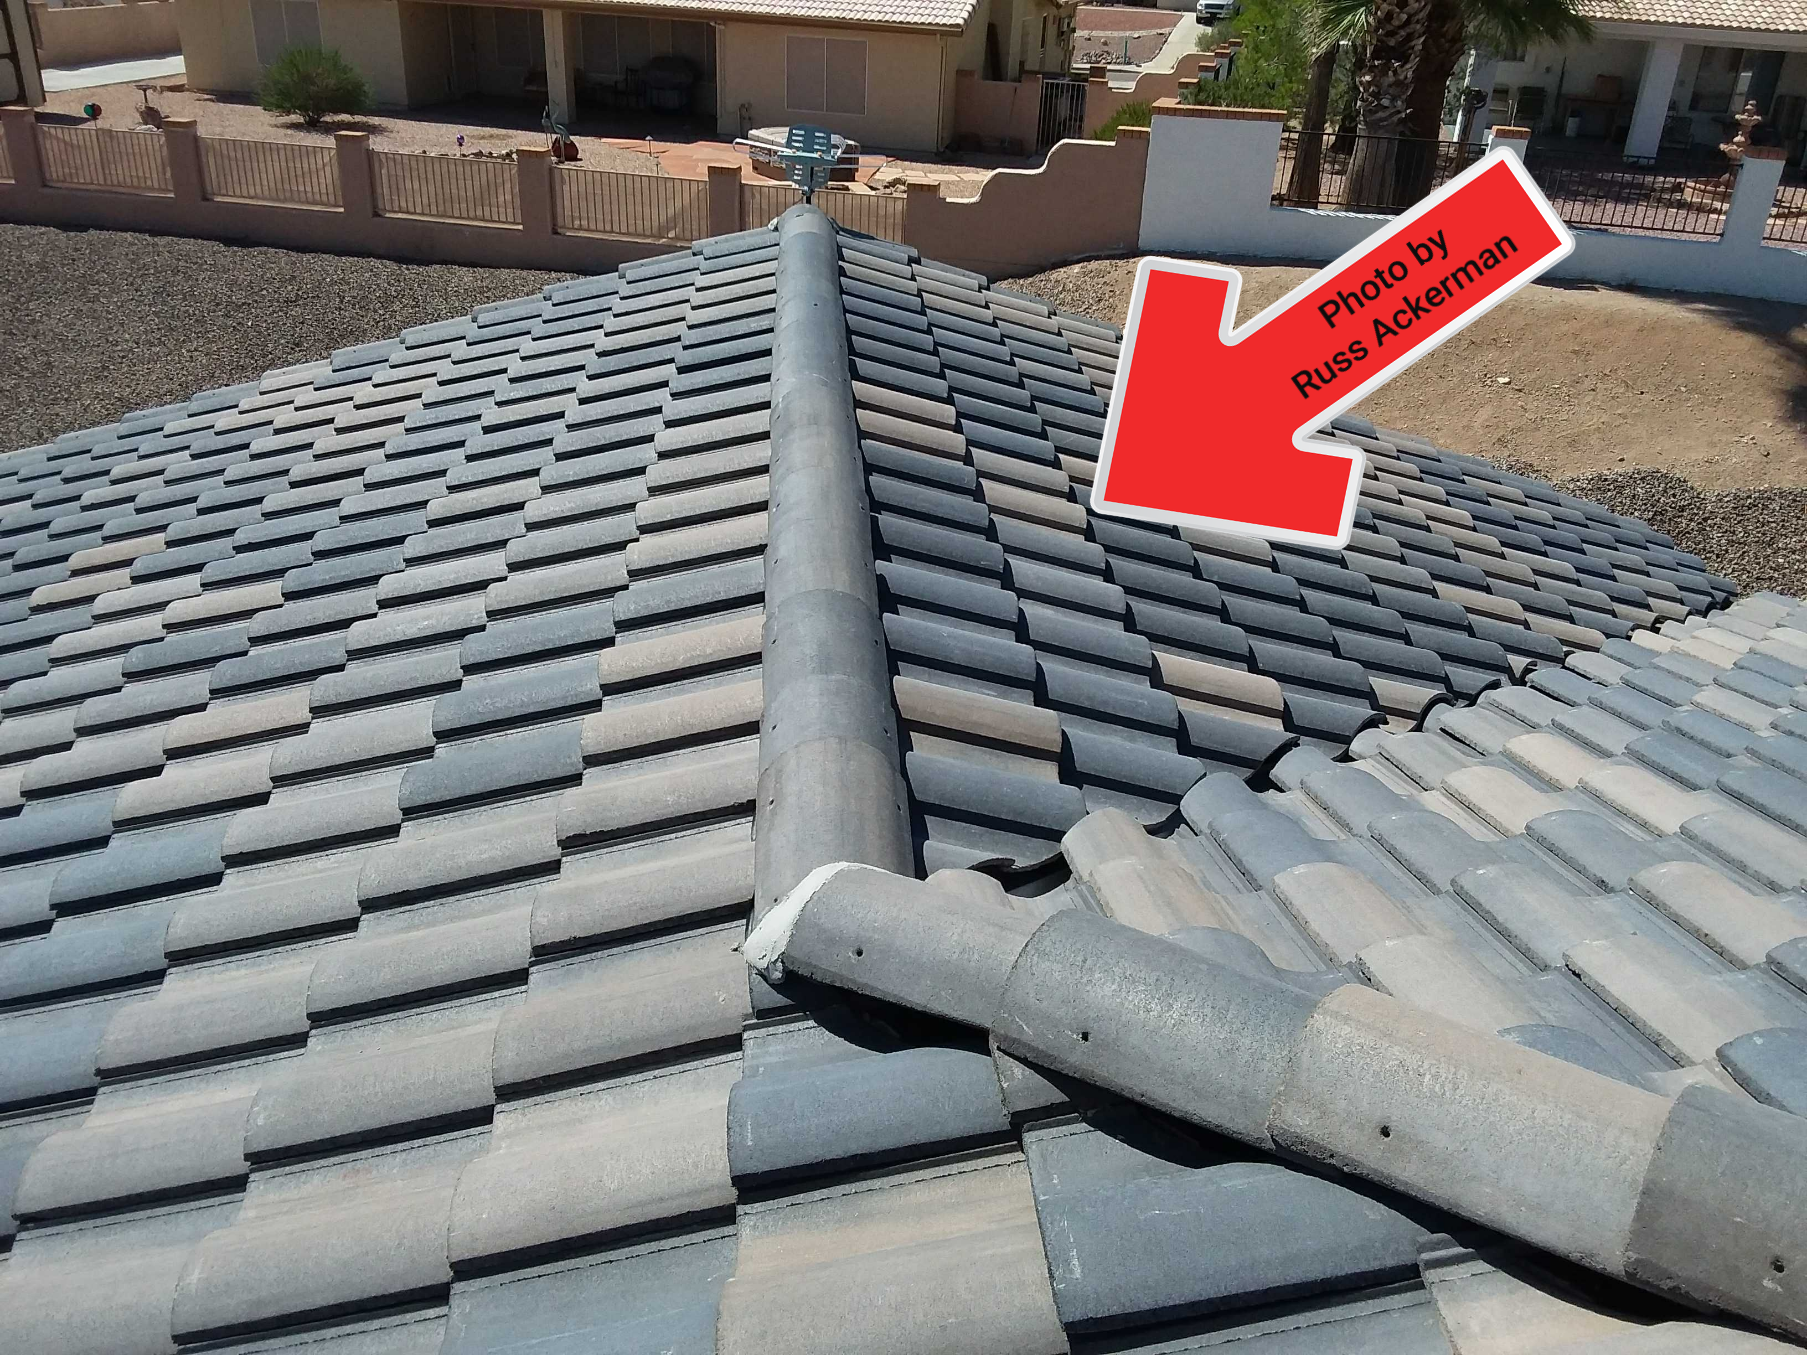 The roof of this new home was almost perfect, apart from having no attic ventilation at all. Does a new home need to be inspected? Absolutely.